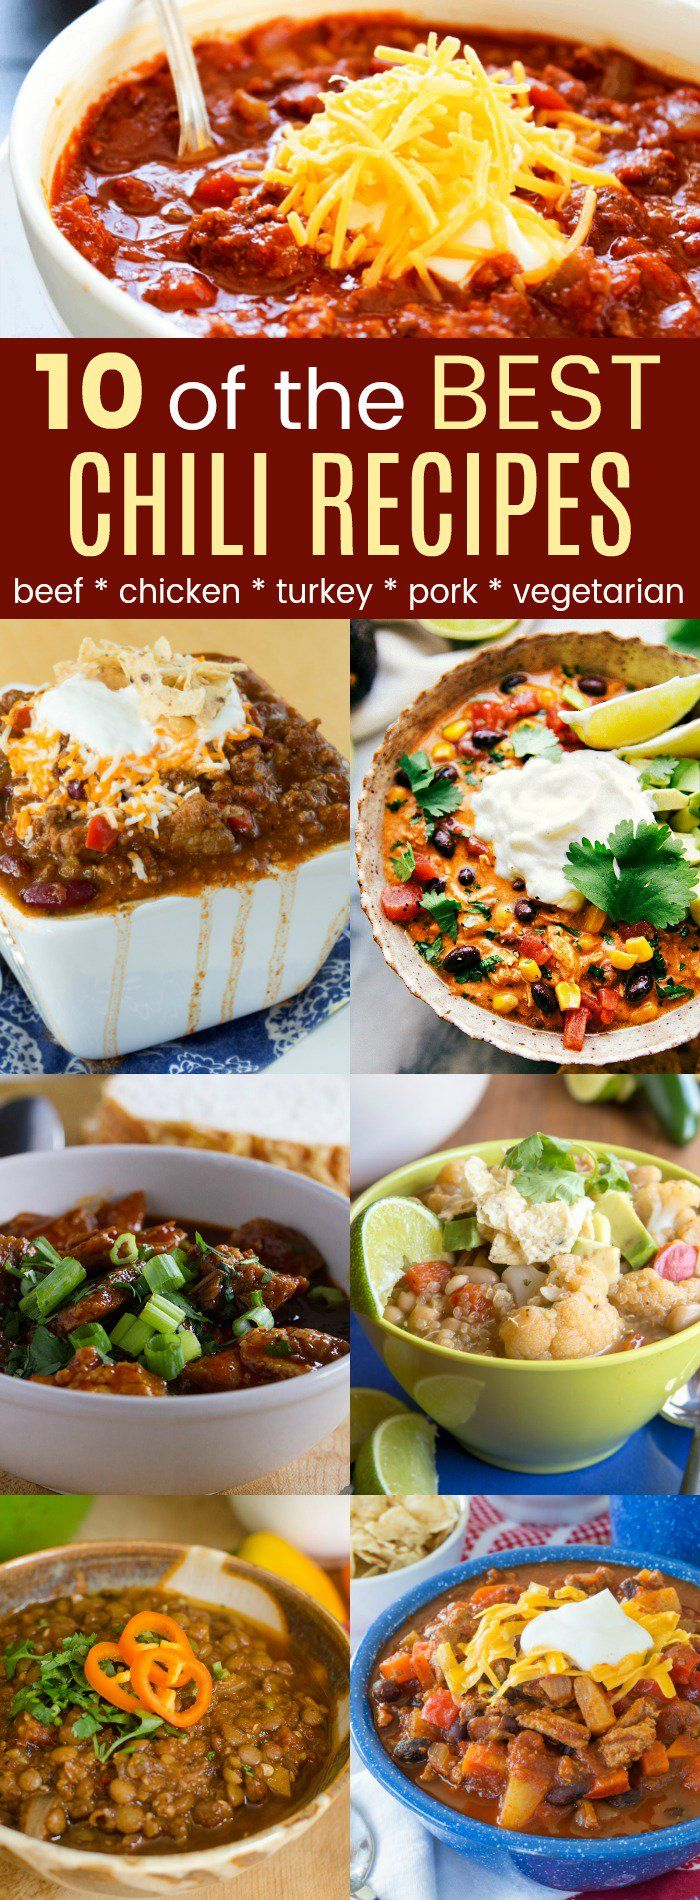 how to make chili with turkey mince